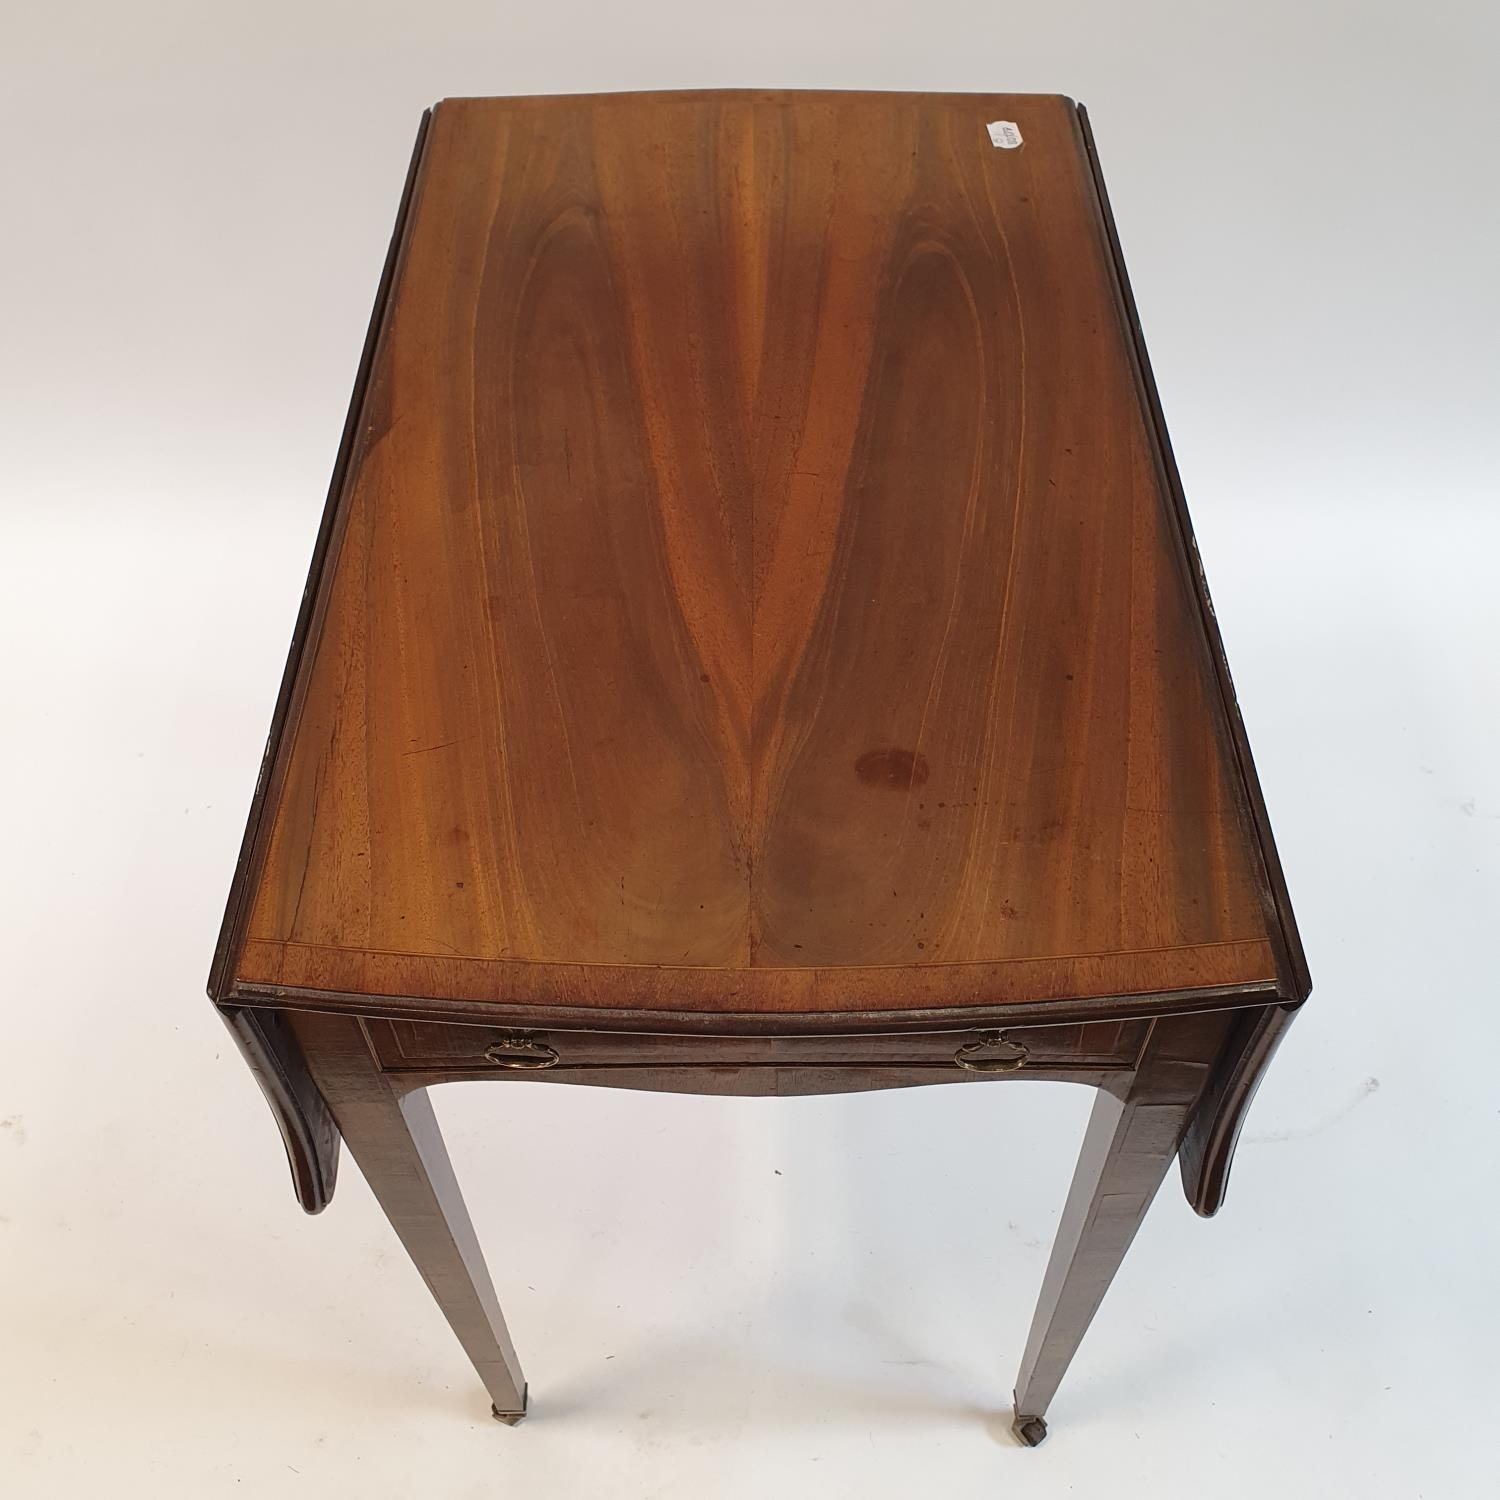 A George III mahogany butterfly top Pembroke table, of small proportions, crossbanded in rosewood, - Image 2 of 3